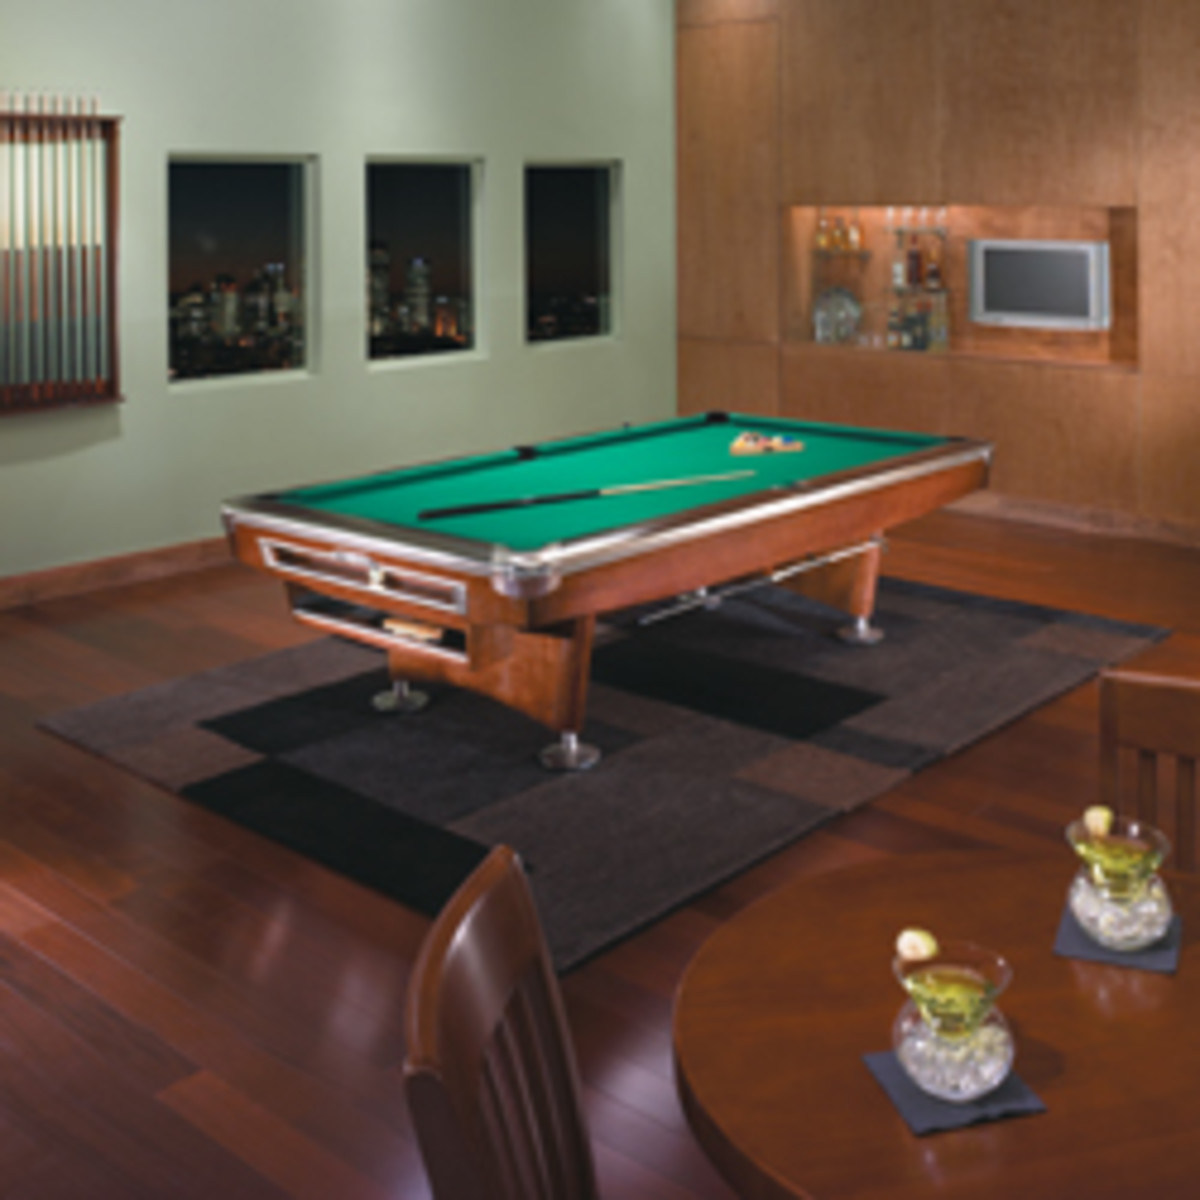 The Gold Crown V looks pretty good in a finished game room.